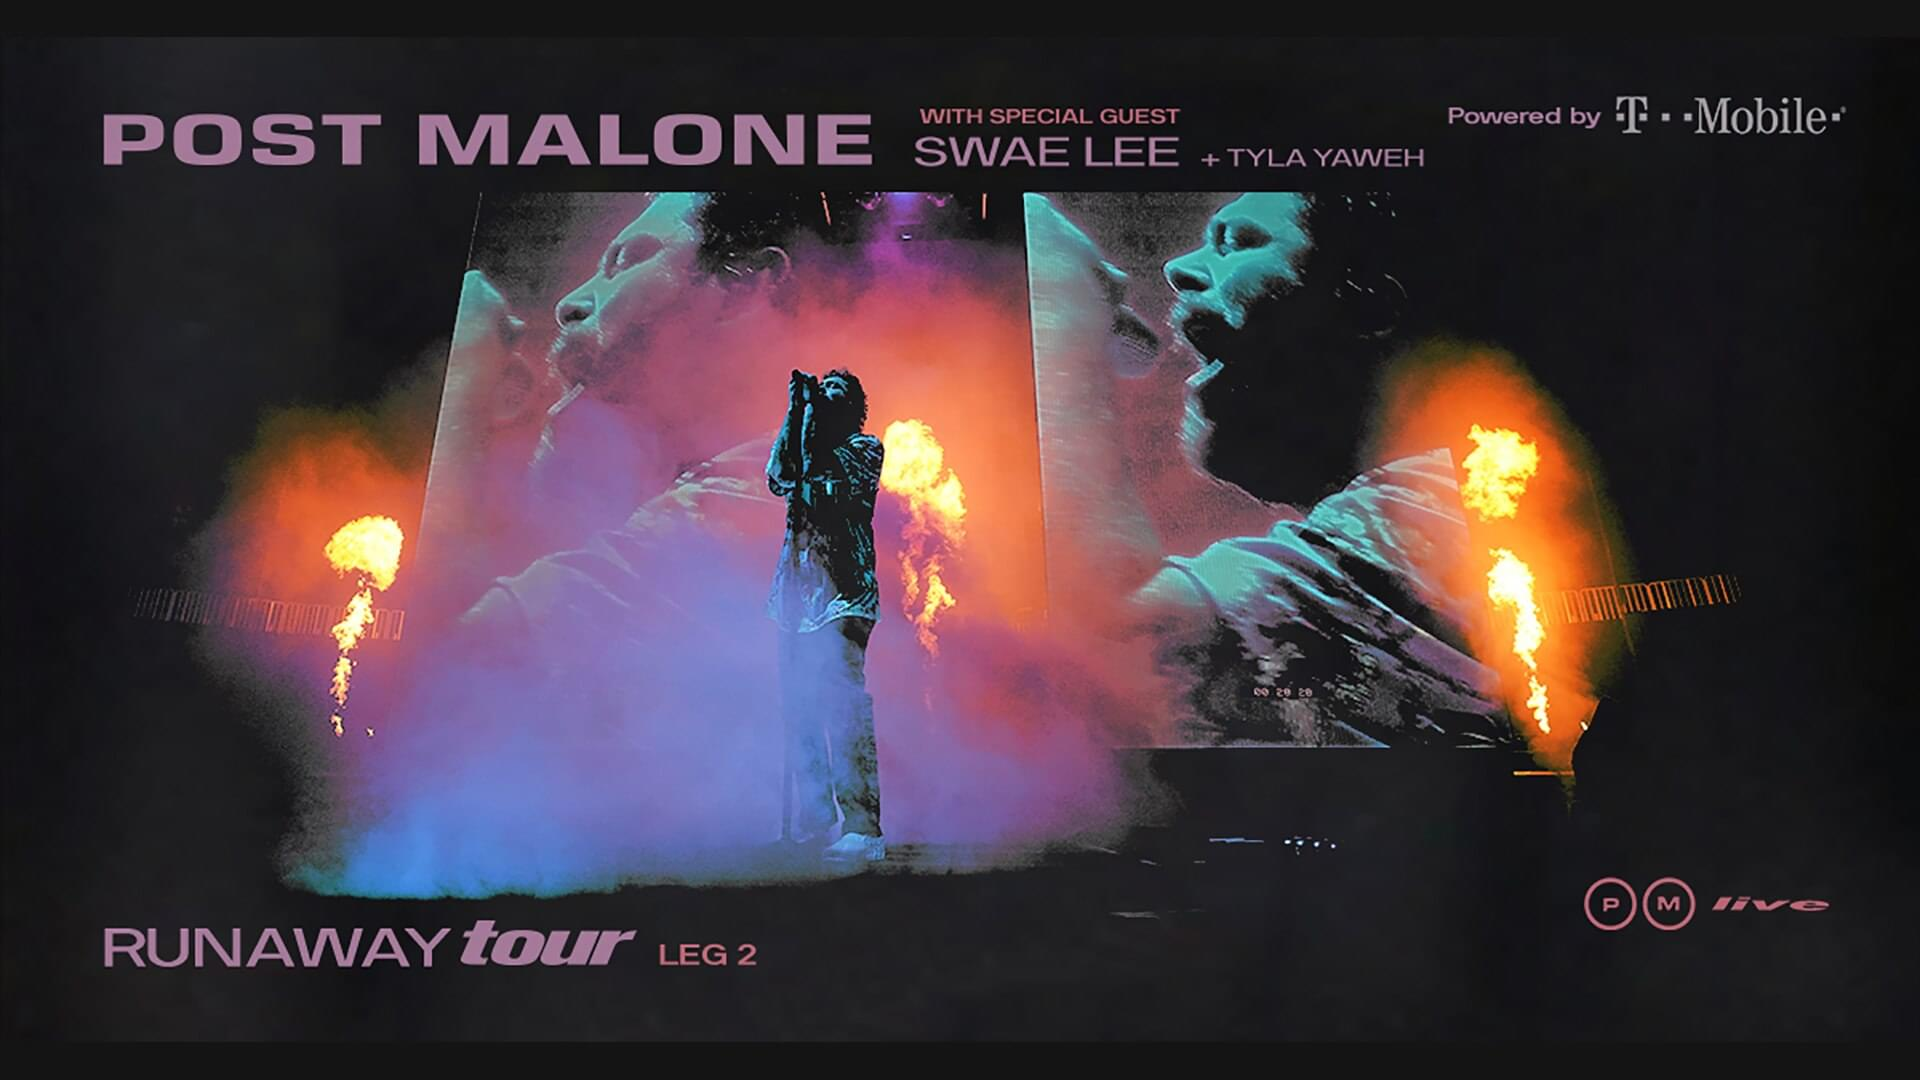 Post Malone — Runaway Tour (2/27) @ Capitol One Arena